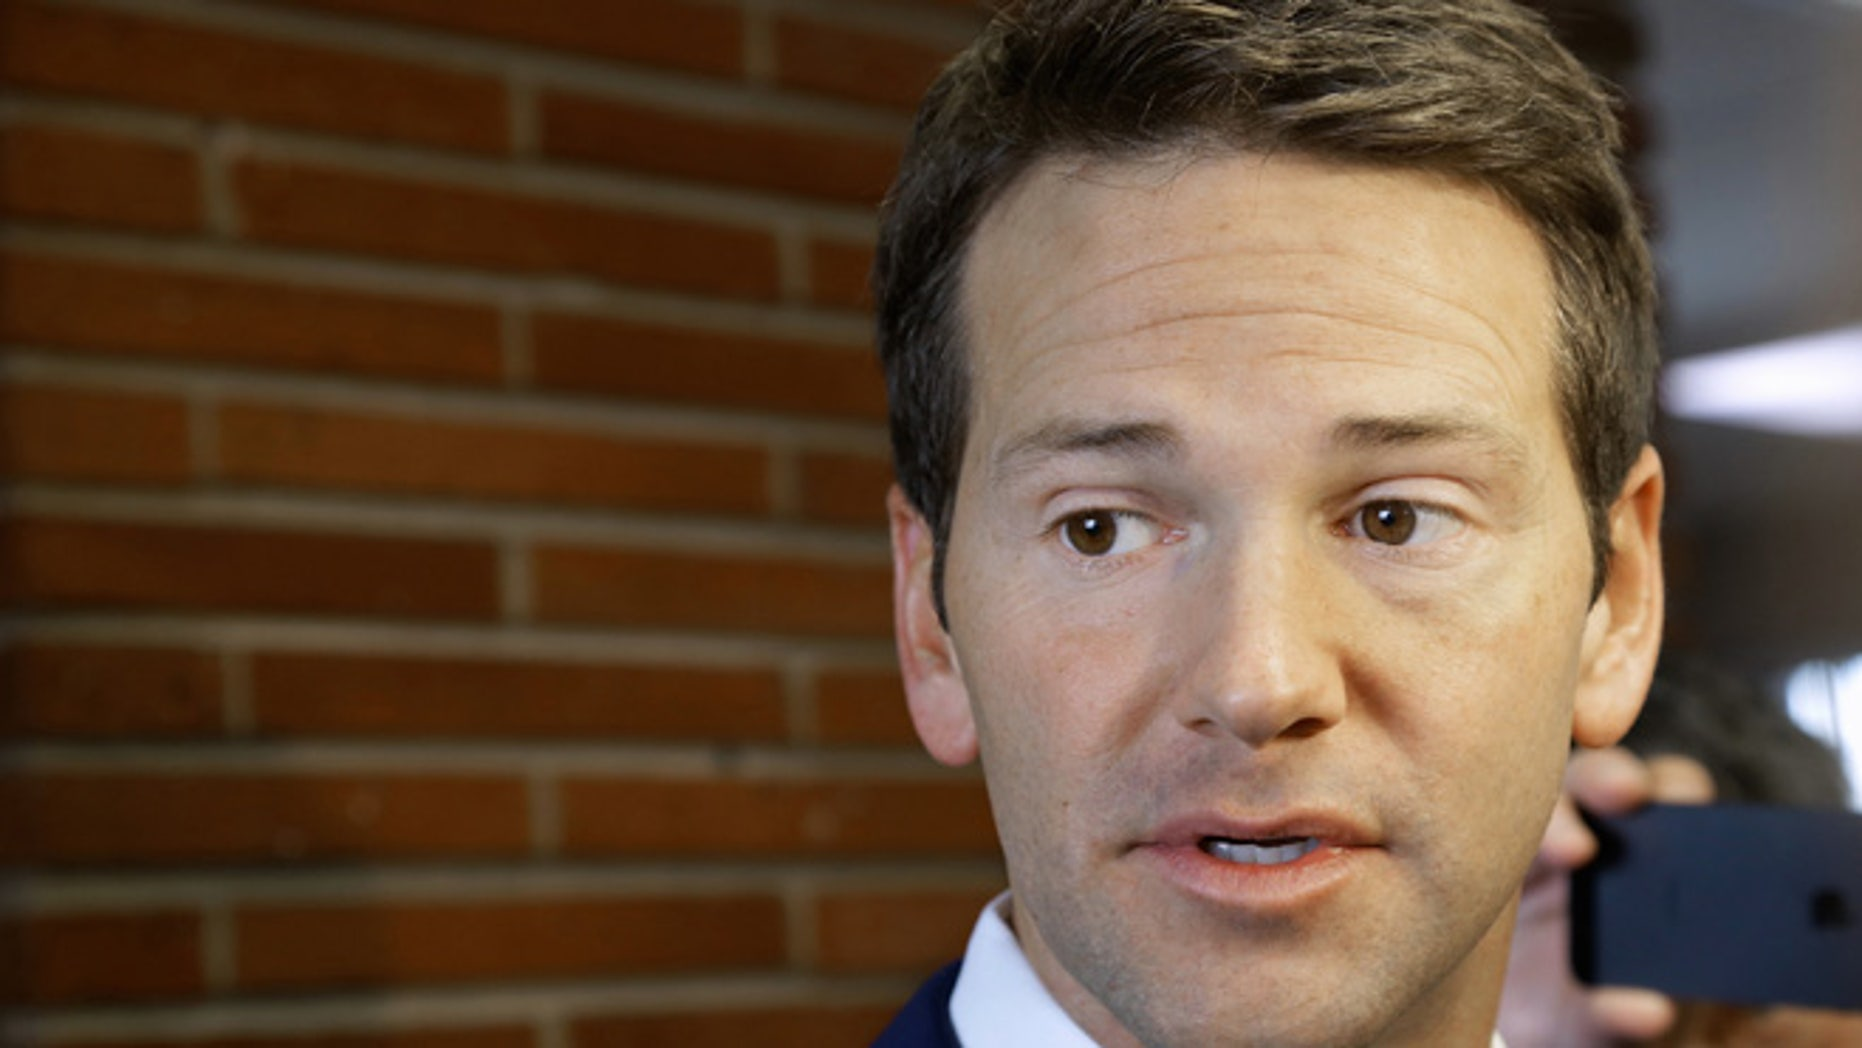 Feb. 6, 2015: Then-Rep. Aaron Schock, R-Ill. speaks to reporters in Peoria Ill.